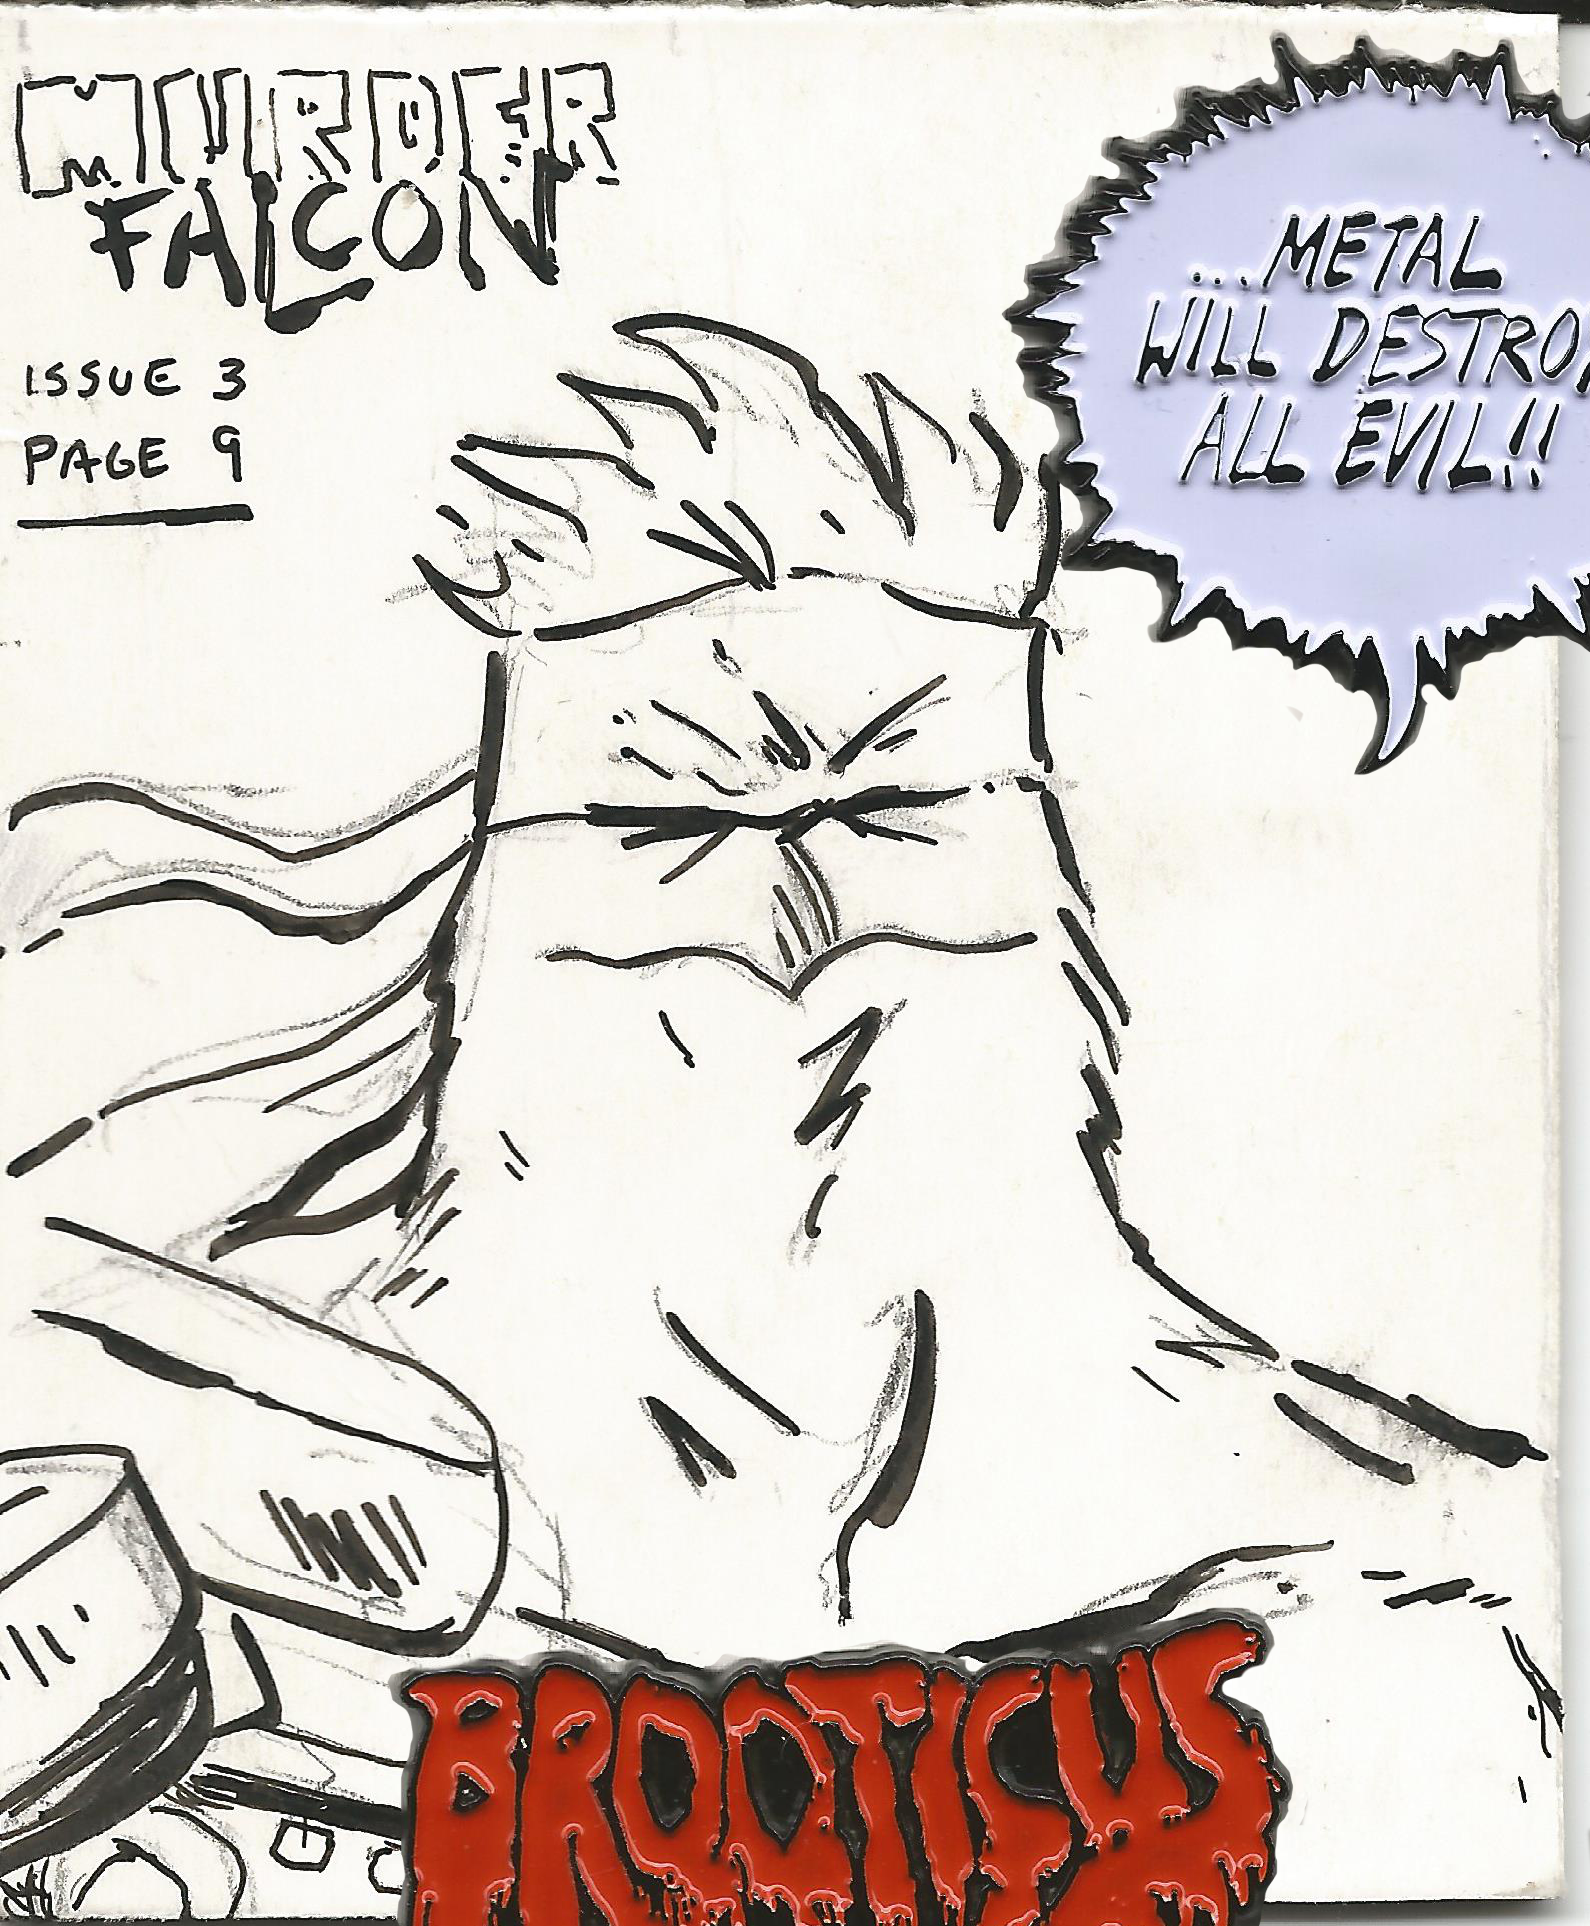 """Here's a little Fan Art piece of Murder Falcon. I'm a huge fan of Daniel Warren Johnson. Everyone should check out his work…Extremity and Murder Falcon are Badass!  Paper - Dickies work sock packaging (backside)   Size - 3.25"""" x 2.5""""  Medium - HB Pencil, Tombow Fudenosuke Pen Brush (Hard tip)."""